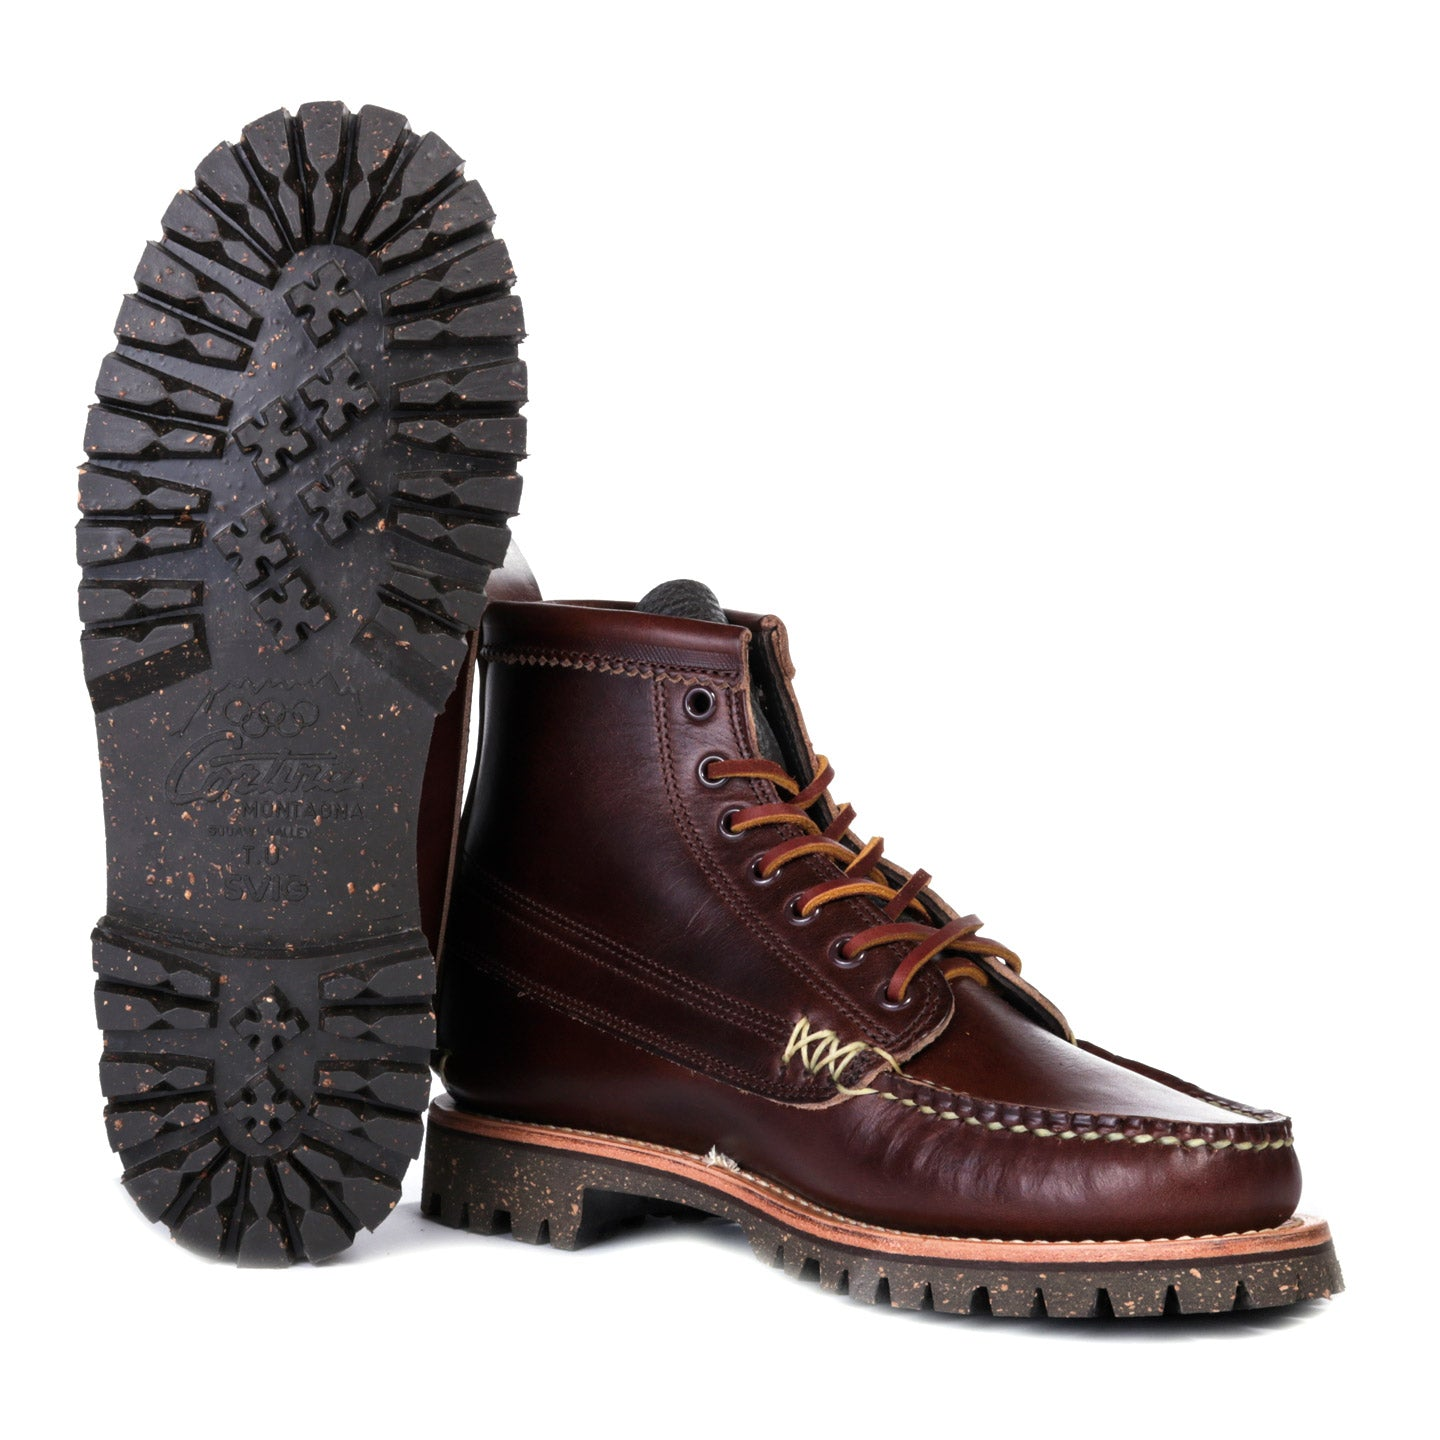 YUKETEN ANGLER BOOT BROWN